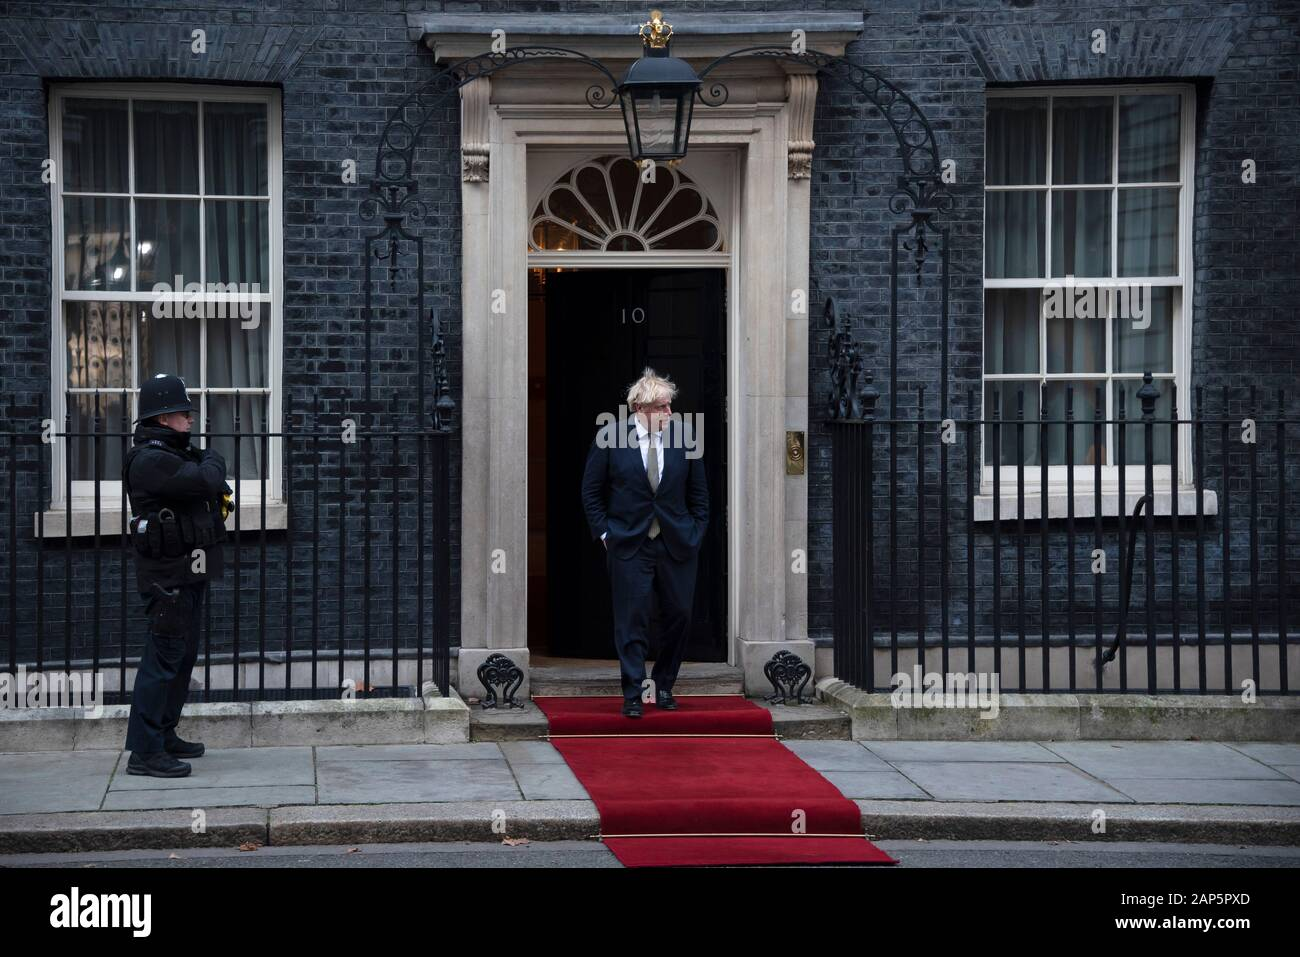 London, UK. 21st Jan, 2020. Prime Minister Boris Johnson waits to greet President of Kenya Uhuru Kenyatta in Downing Street. Credit: claire doherty/Alamy Live News Stock Photo